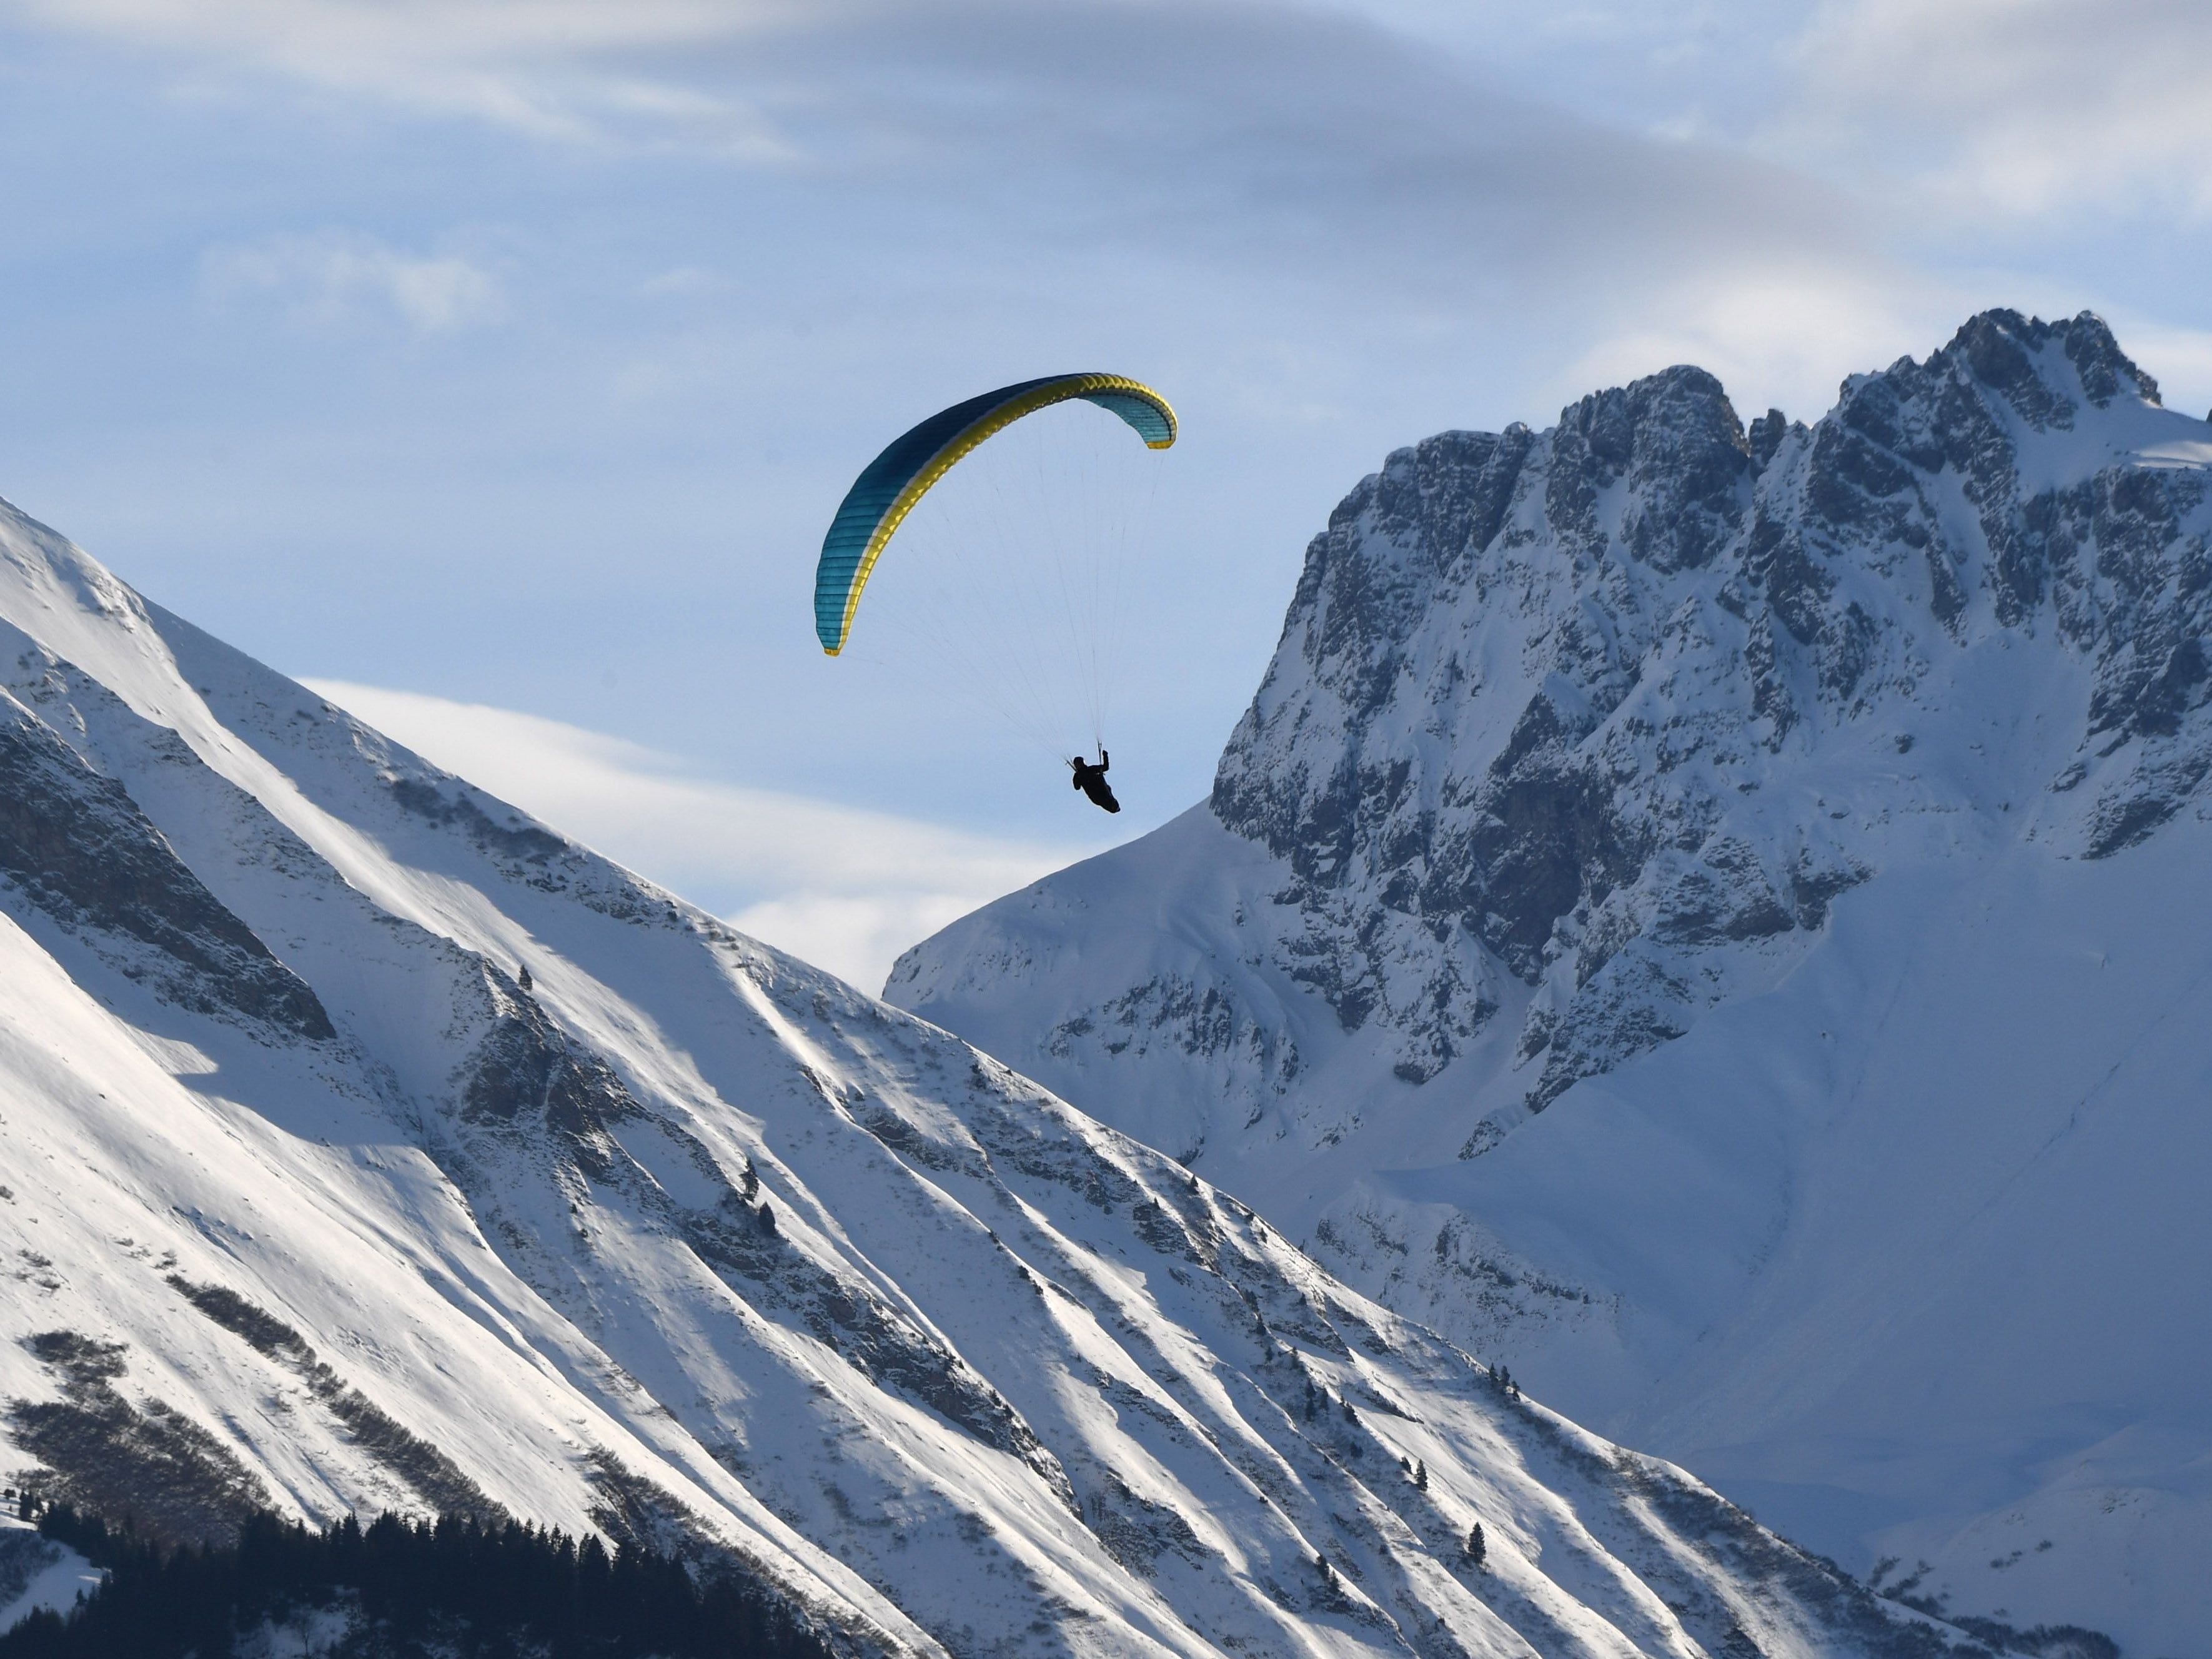 A paraglider flies over the snow-covered Alp mountains near the Bavarian winter sport village Oberstdorf, southern Germany, Dec. 28, 2018.